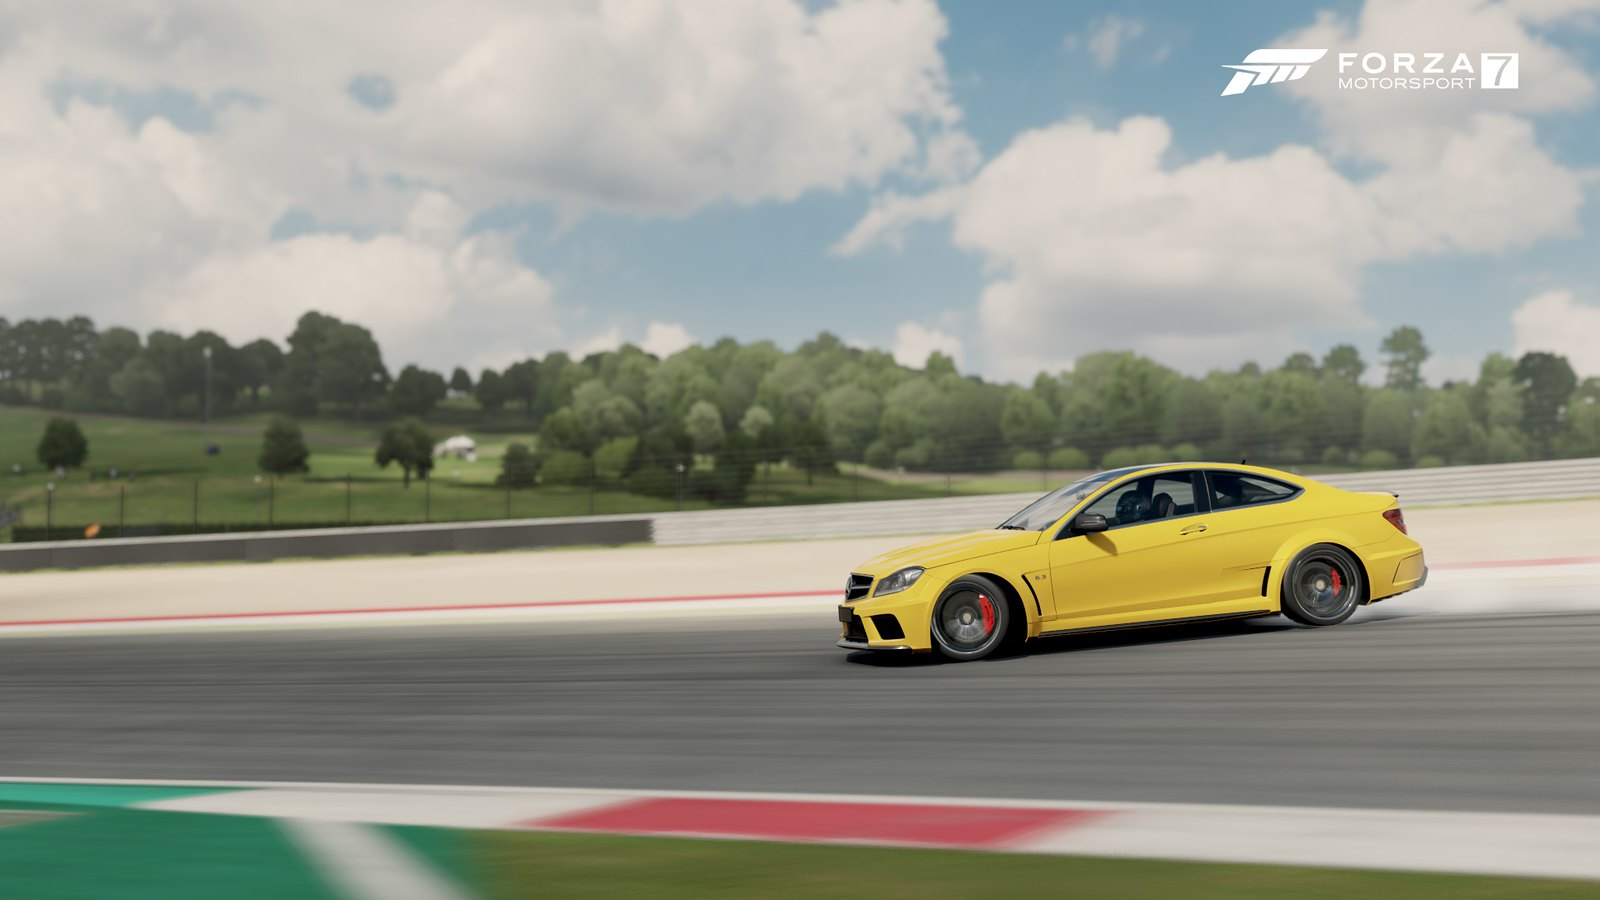 38766409980_a2c7f51050_h ForzaMotorsport.fr